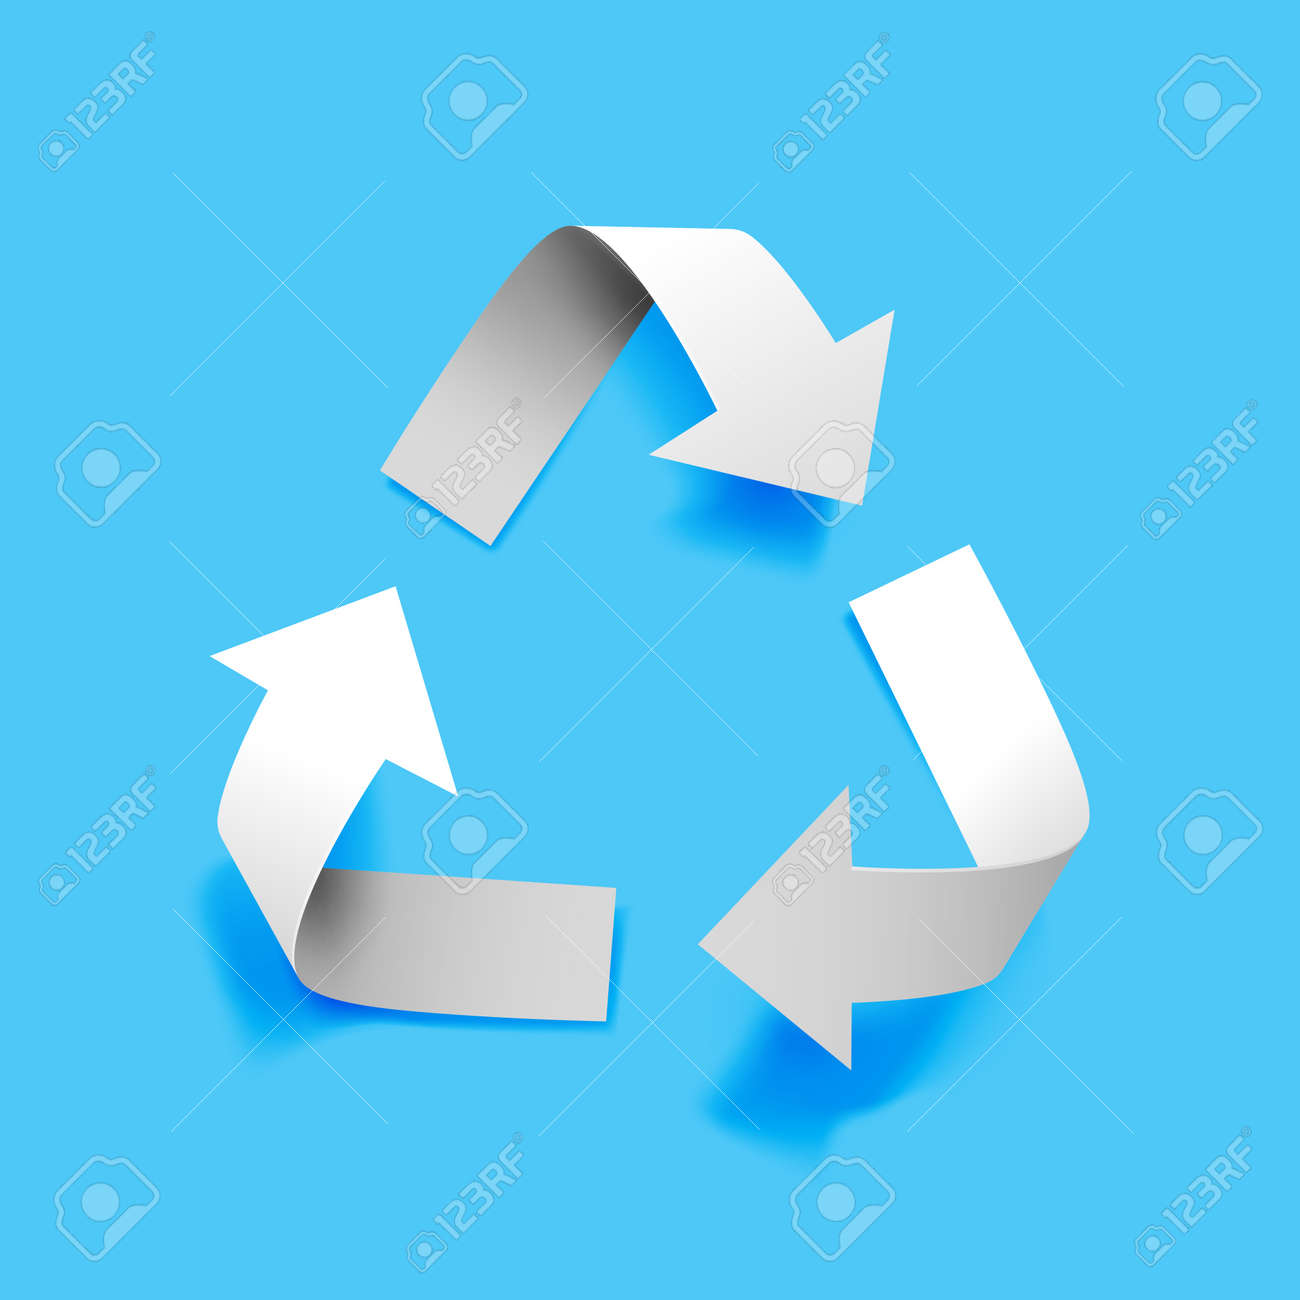 Vector paper recycling symbol on blue background for eco aware design - 169587200